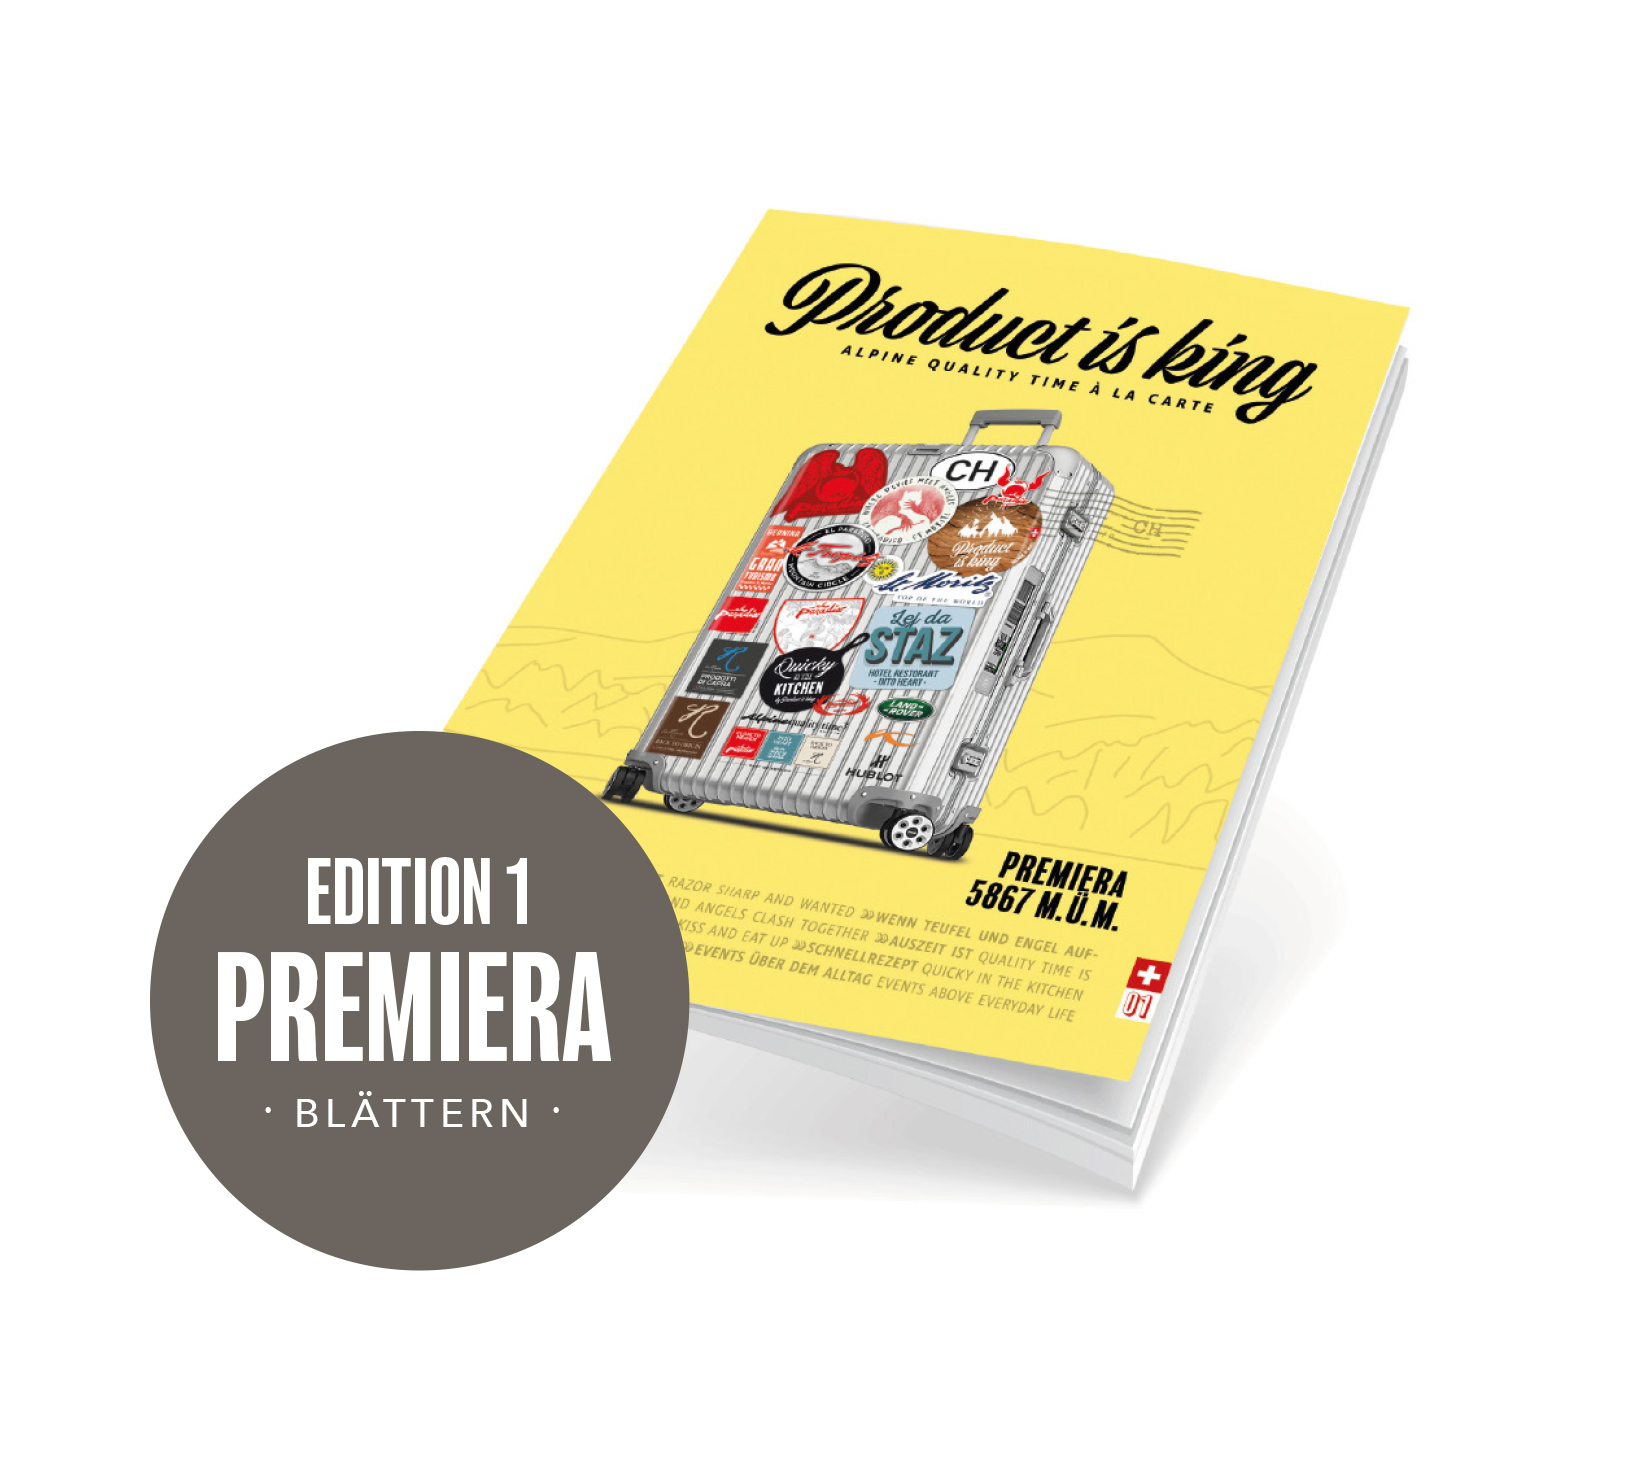 aqt3-product-is-king-edition1-primiera.jpg